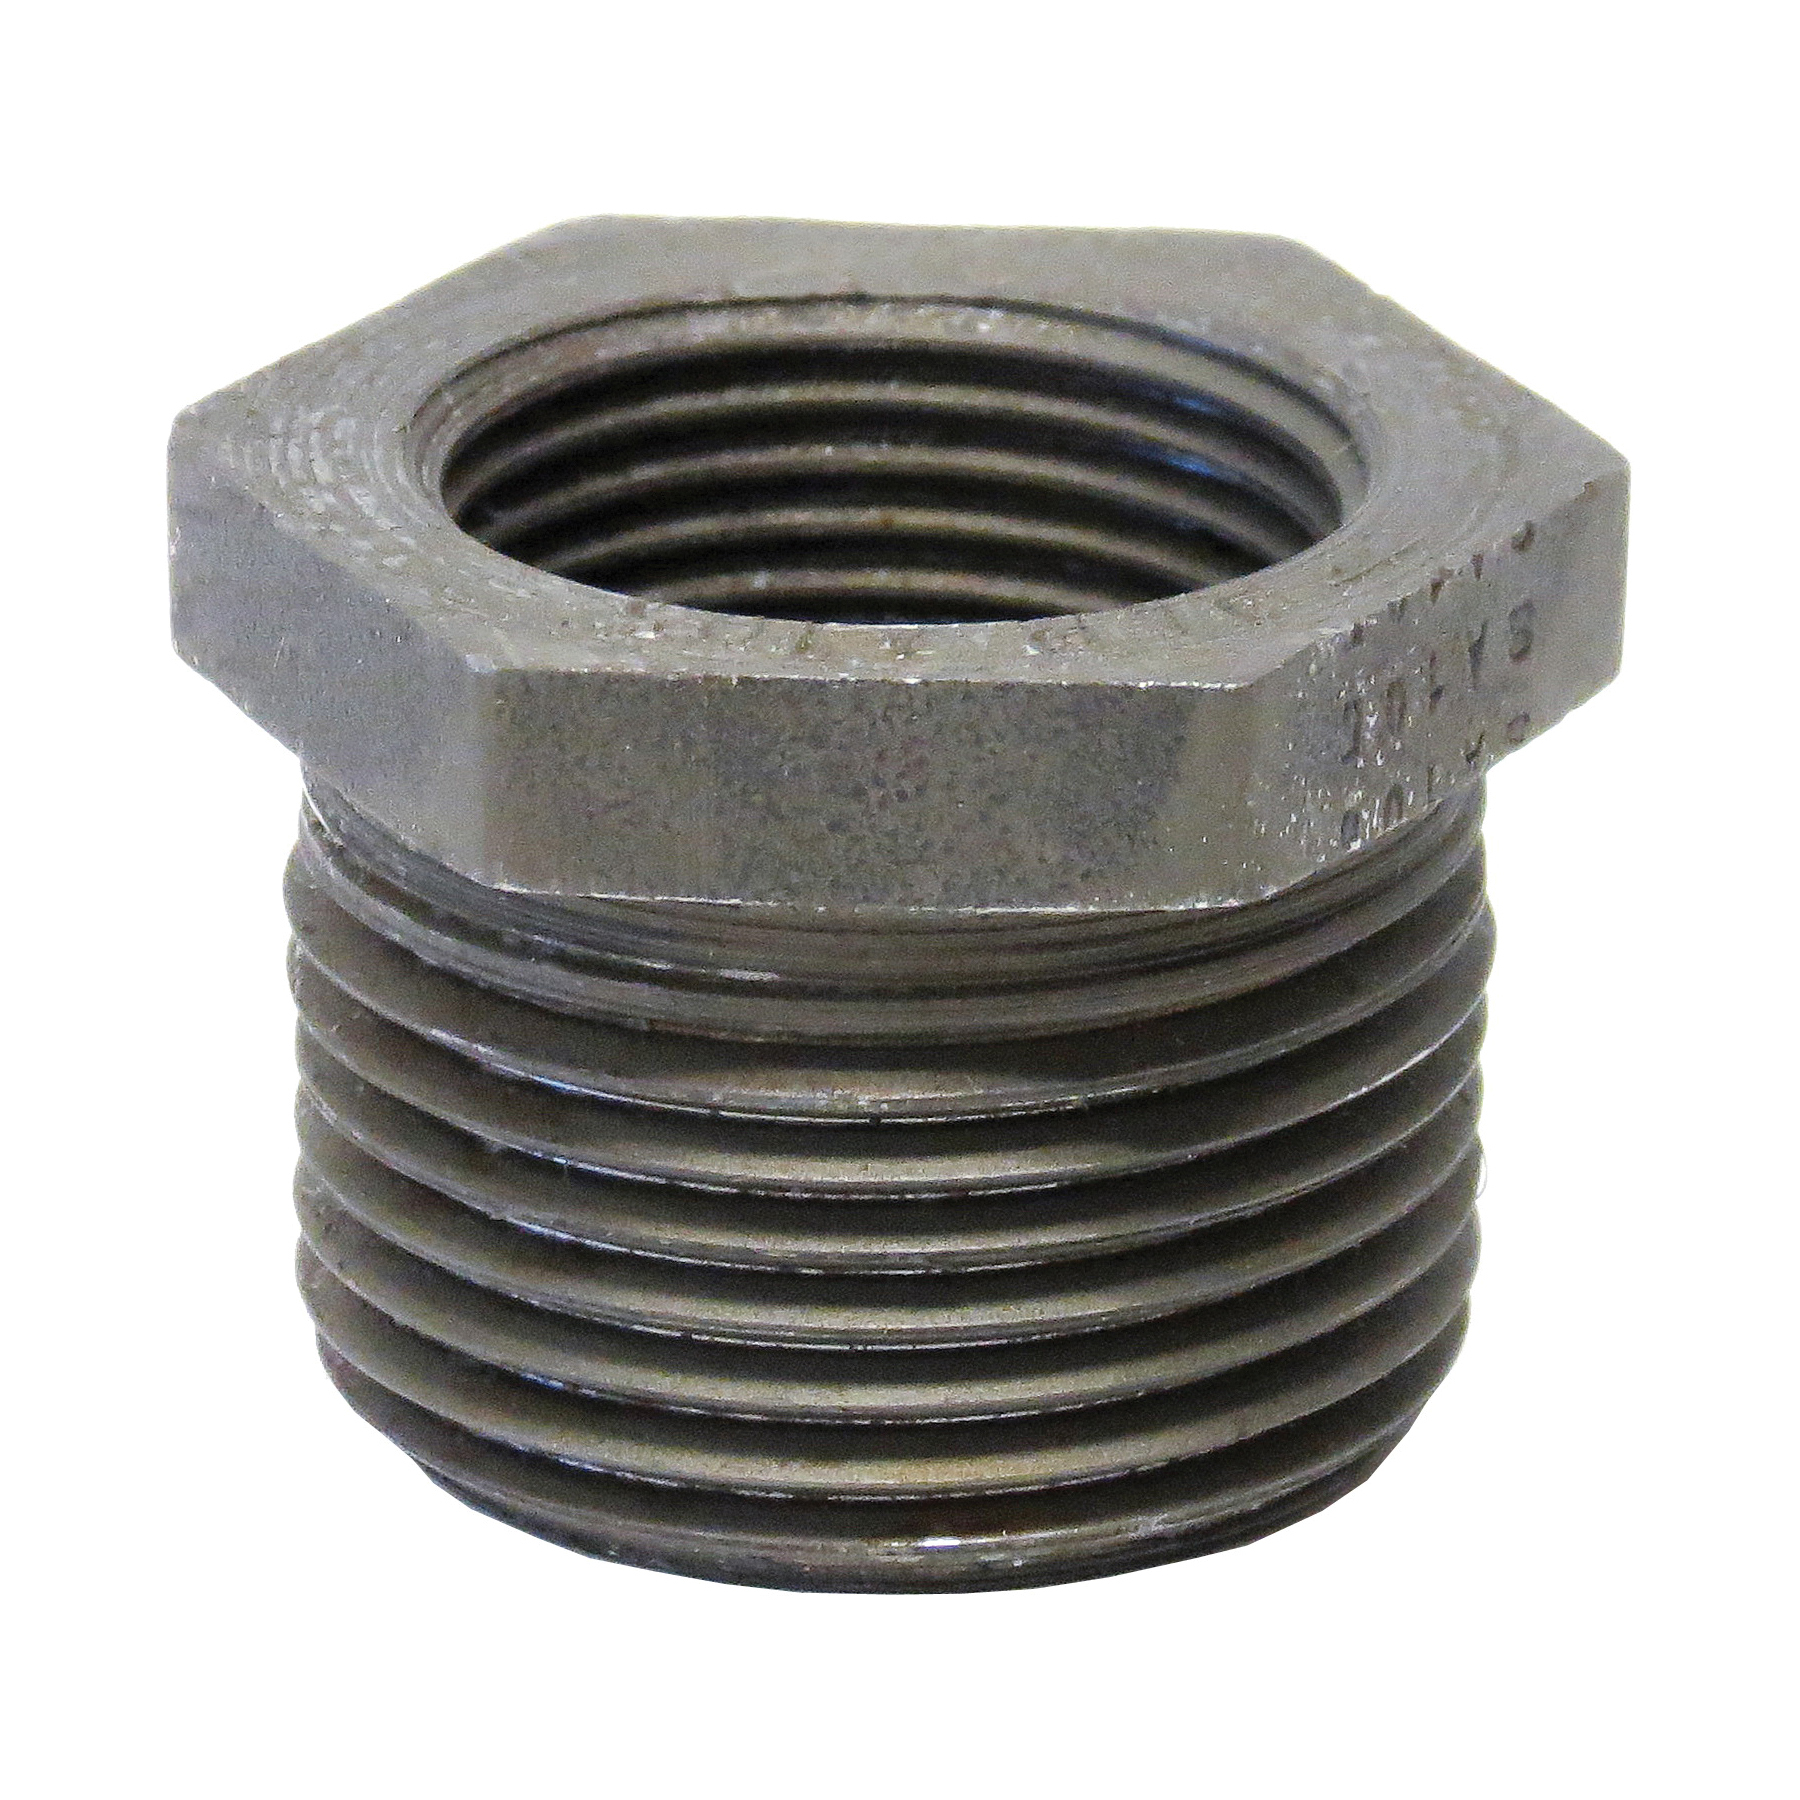 Anvil® 0361331408 FIG 2139 Hex Head Pipe Bushing, 1 x 3/4 in Nominal, FNPT x MNPT End Style, 3000 lb, Steel, Black Oxide, Domestic